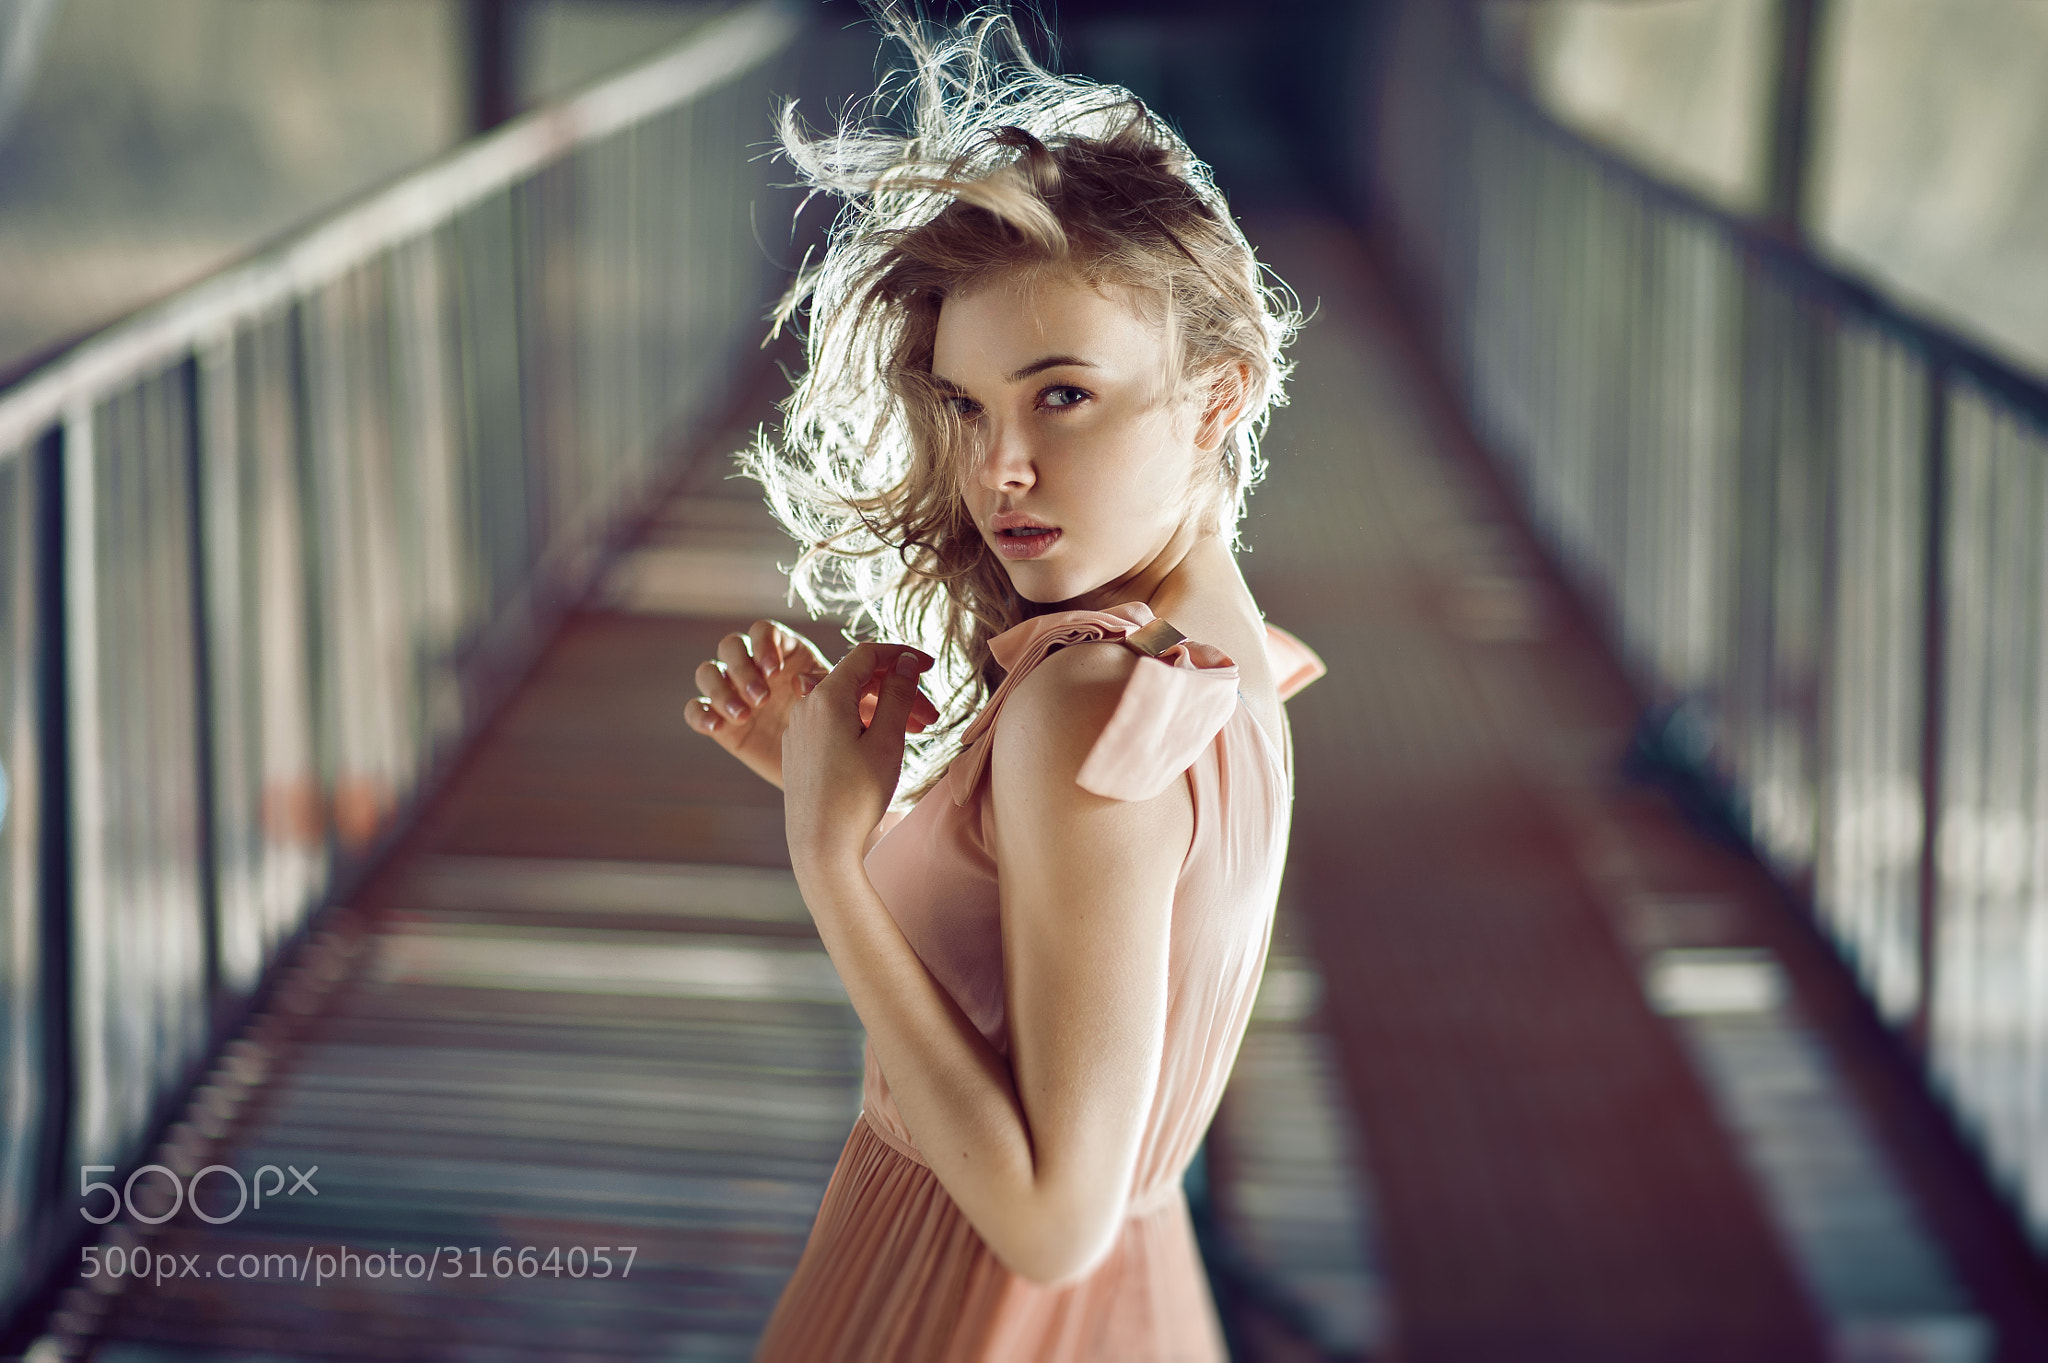 Photograph Under The Bridge by EvgeniyIsupov on 500px